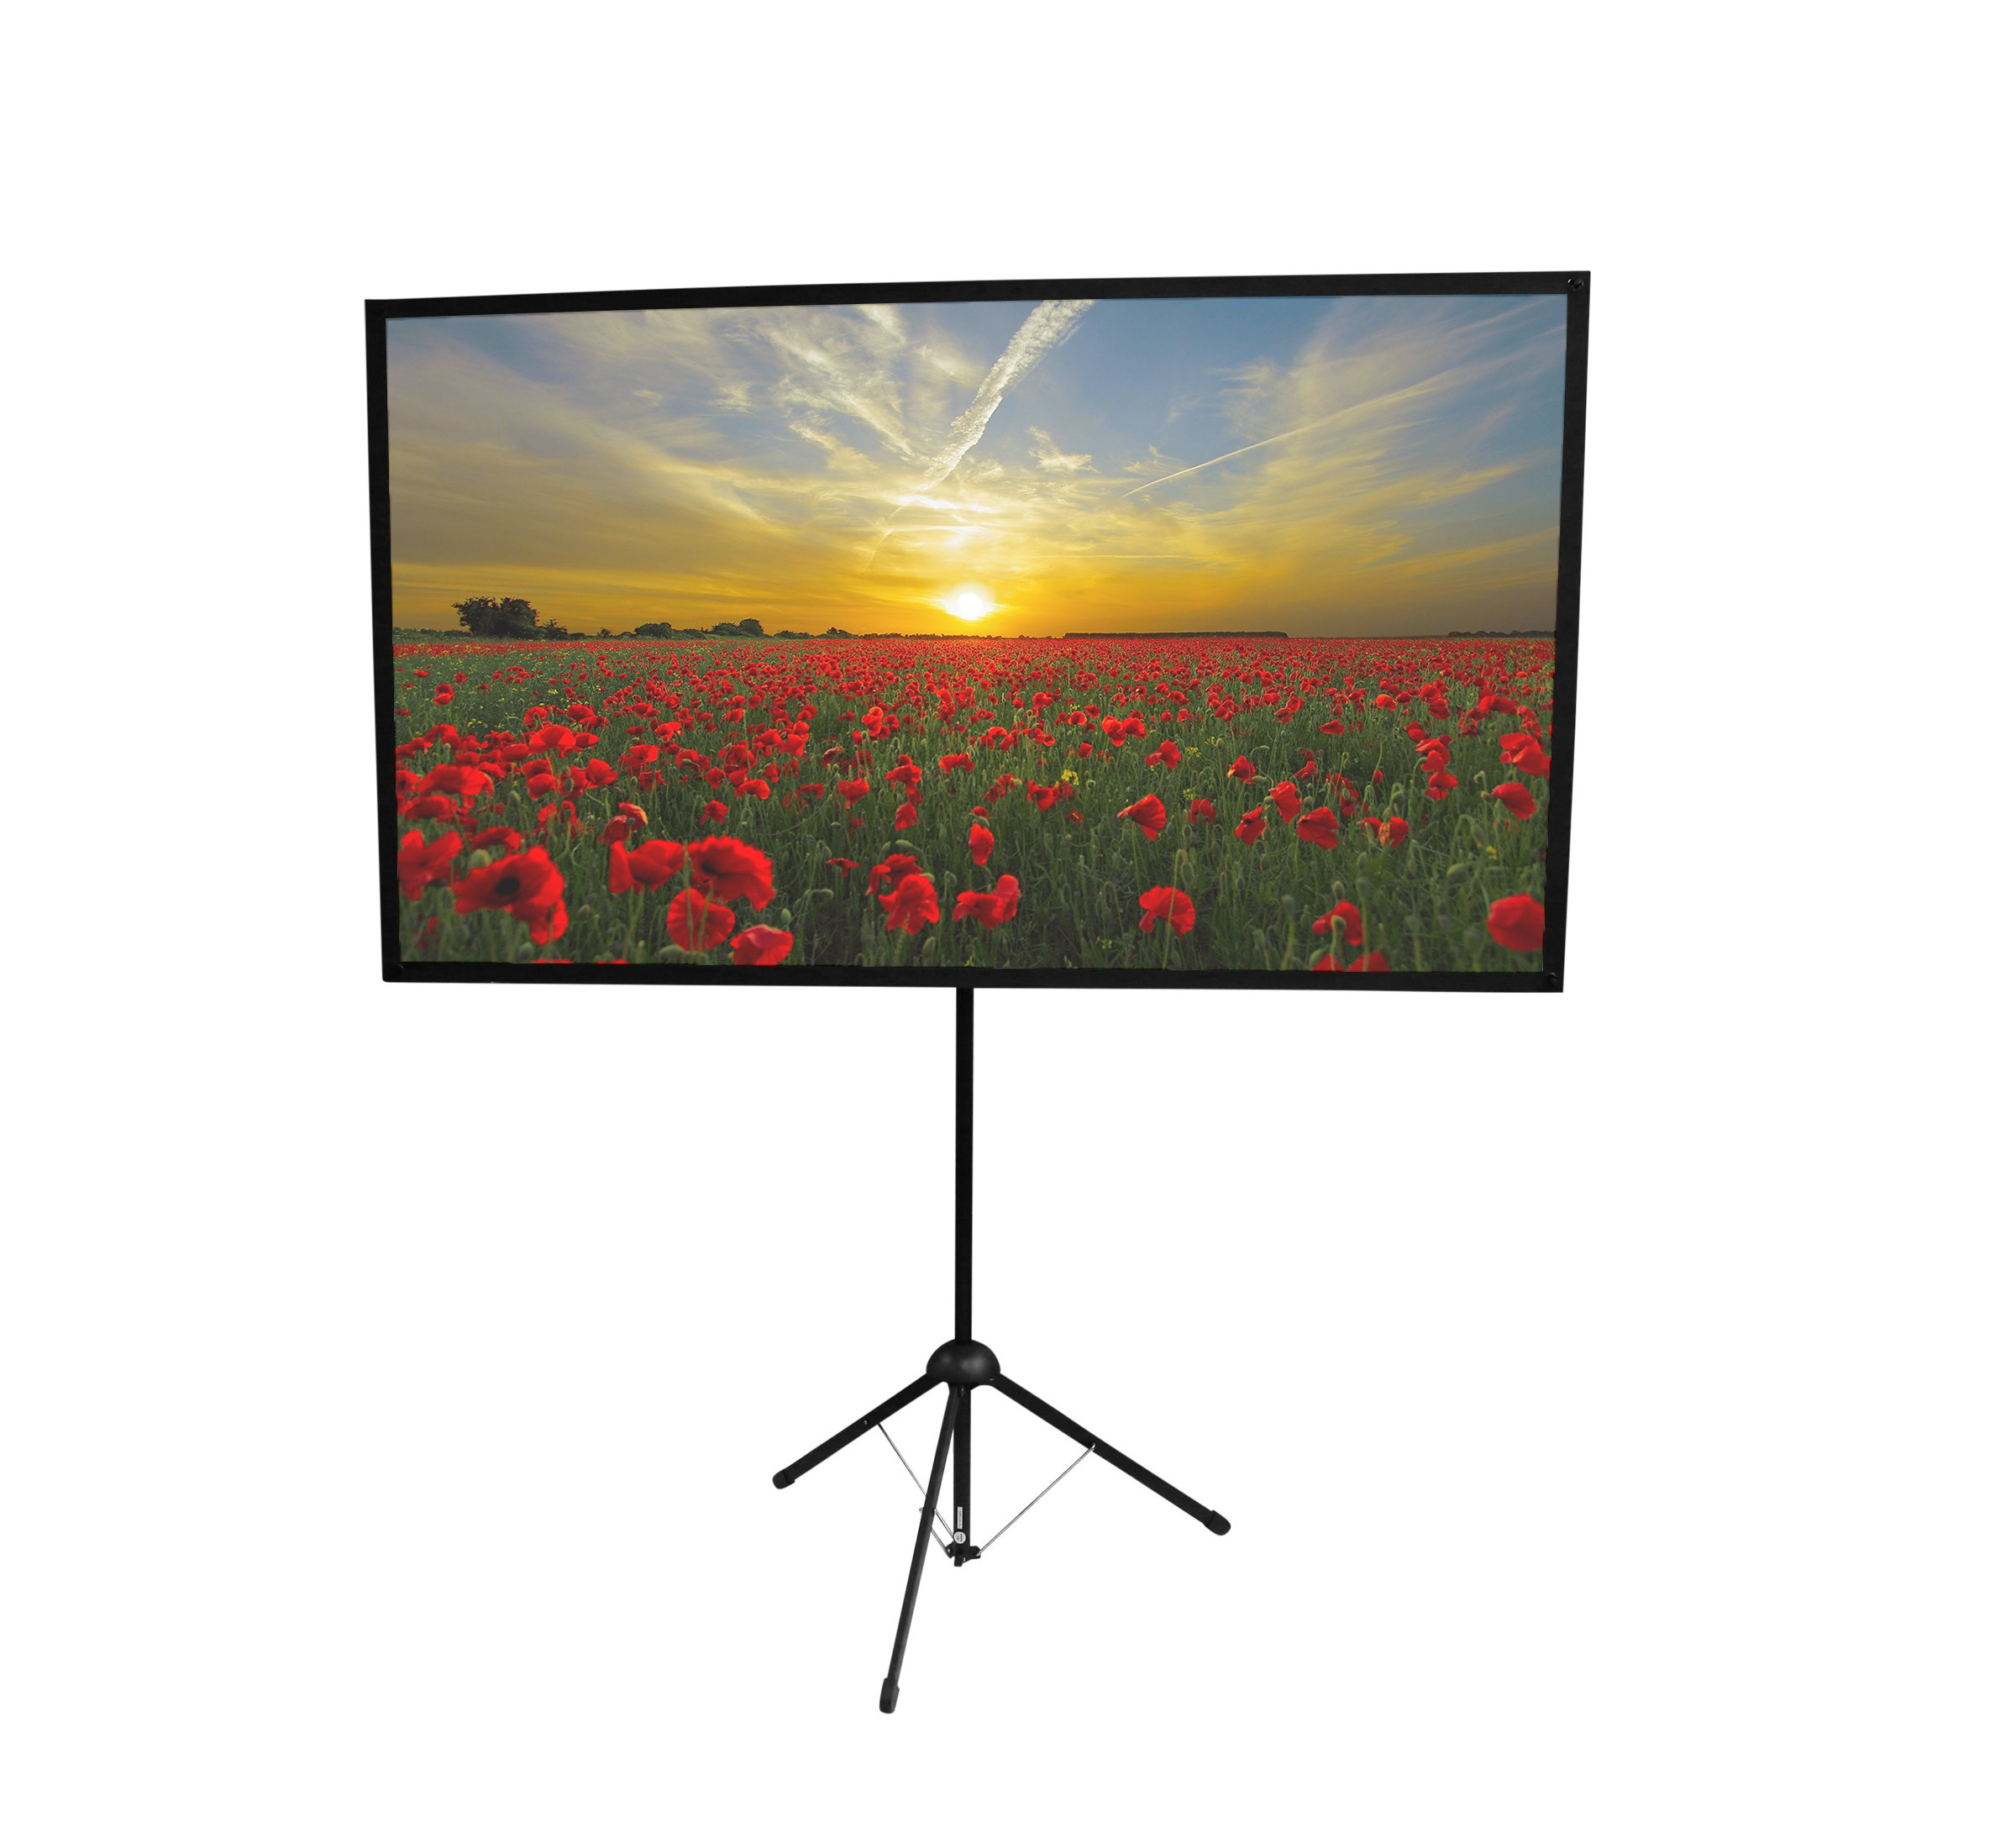 GO-60: 2-in-1 Projector Screen | 60 inch | Mounts on Tripod and Wall | 16:9 Format | 9 lbs | 2 Minute Setup | Includes Carrying Bag | for Mobile Presentation and Home Entertainment |4K Ultra HD Ready